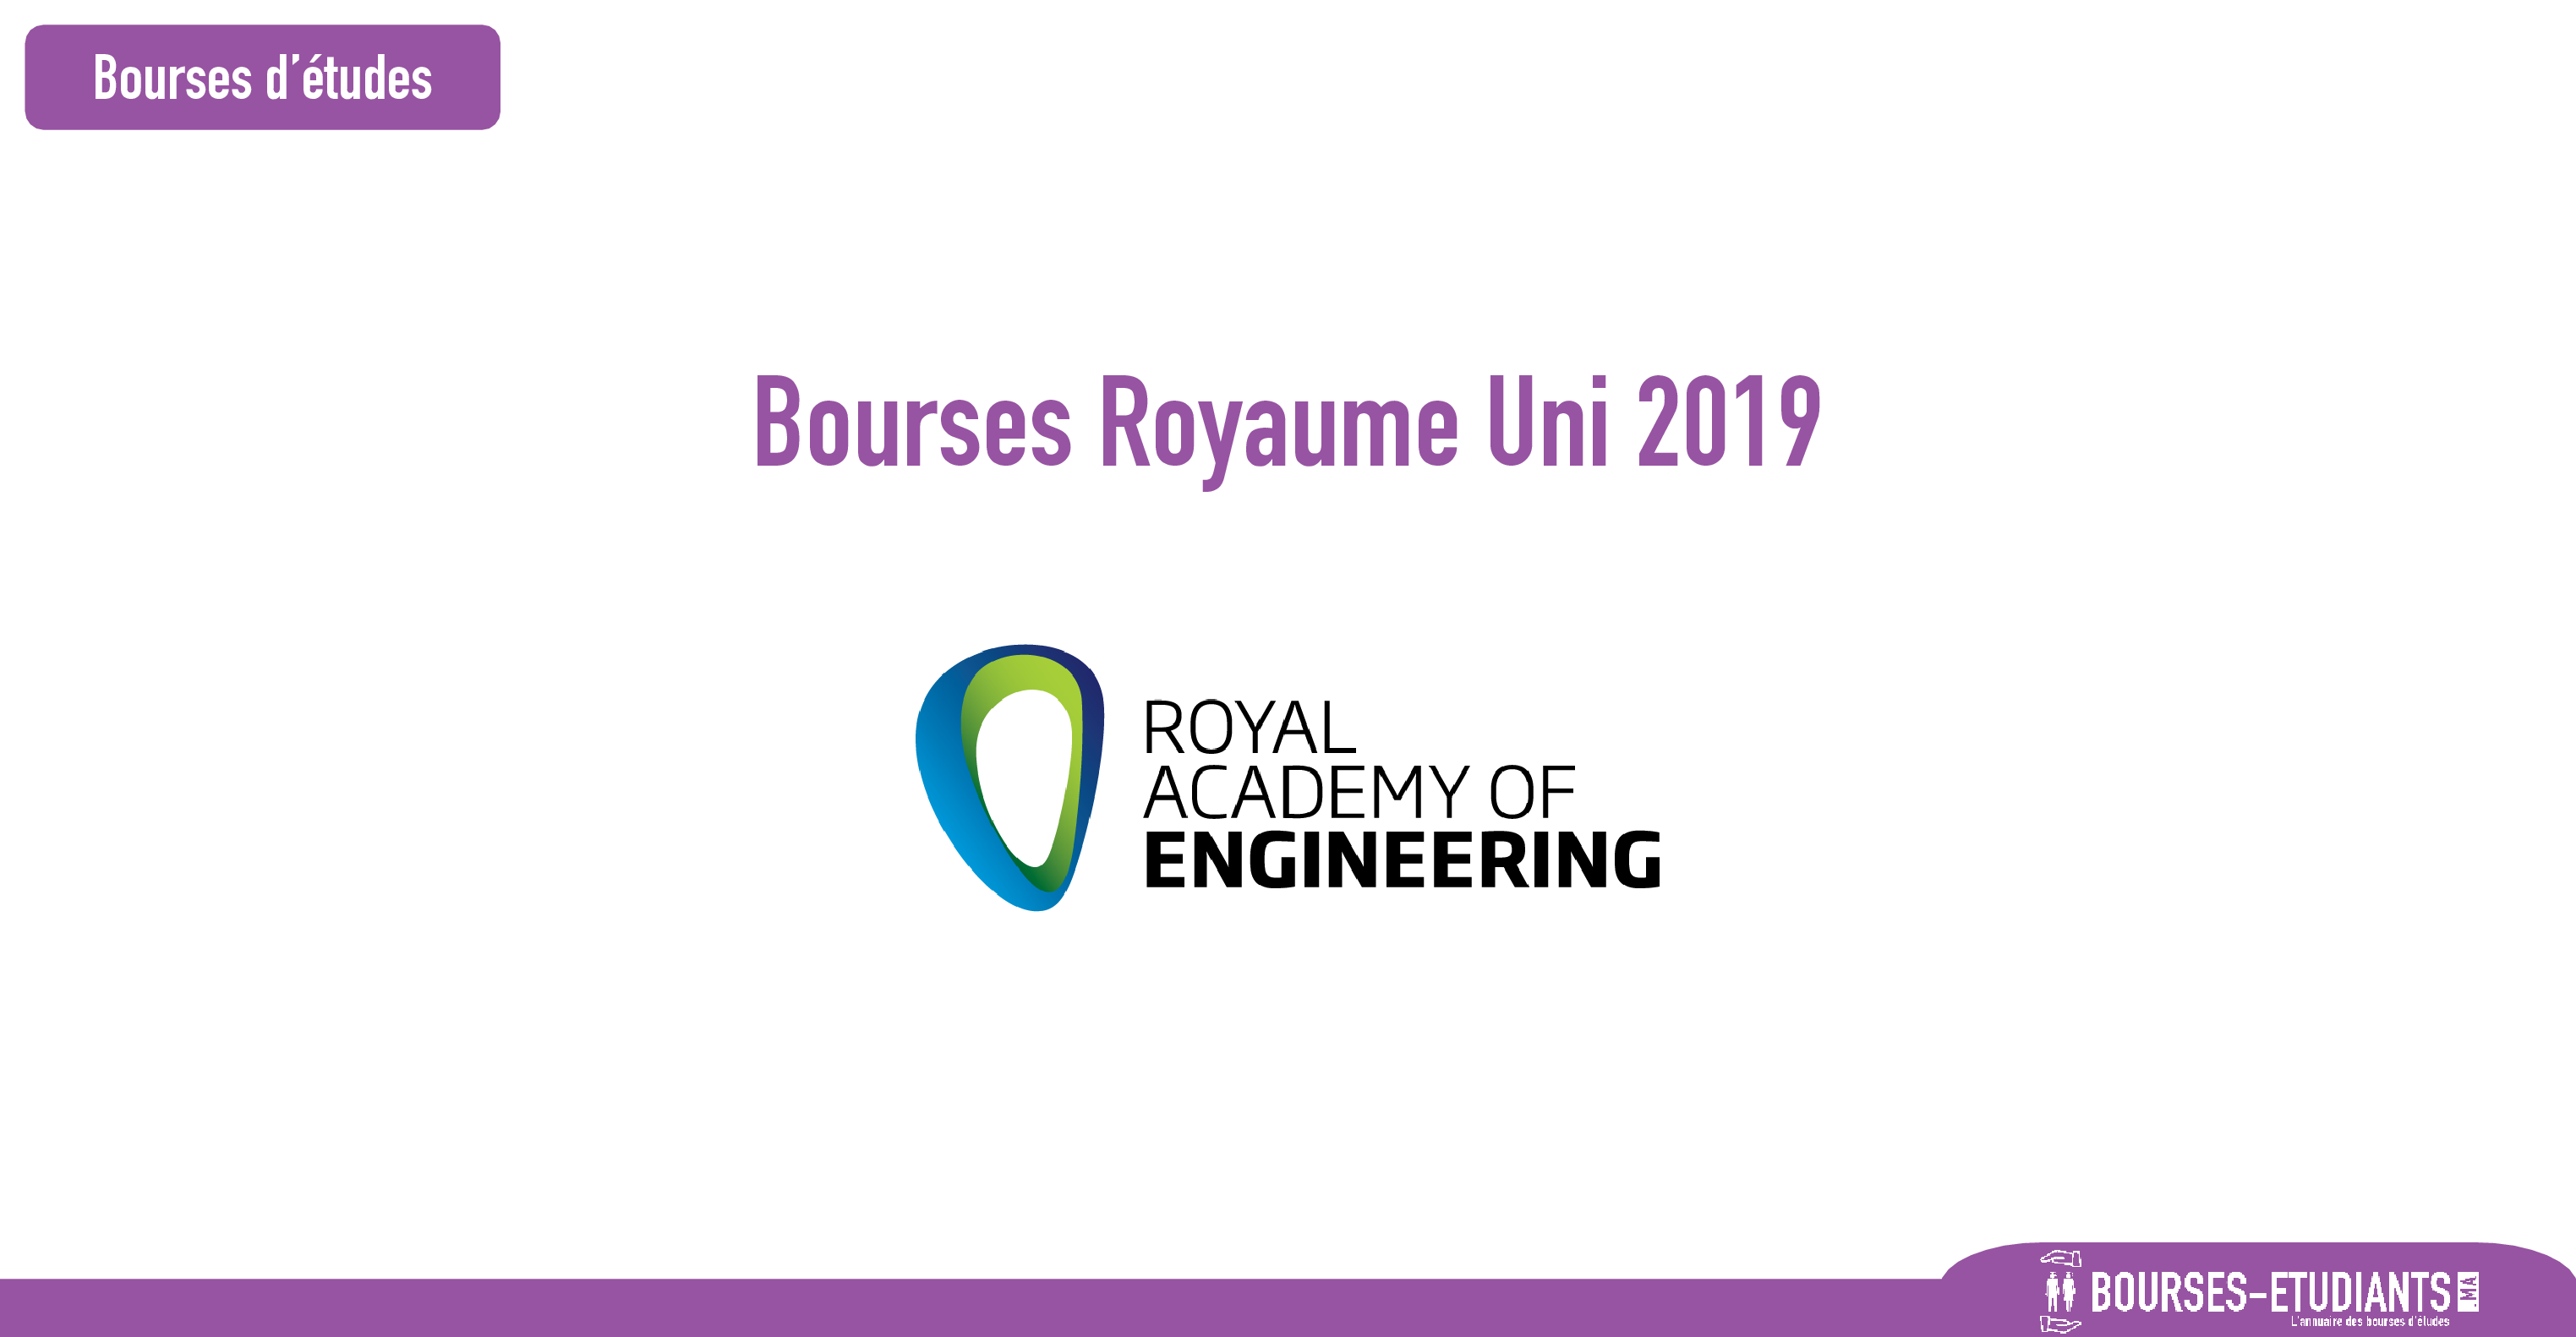 bourse Royal Academy of Engineering